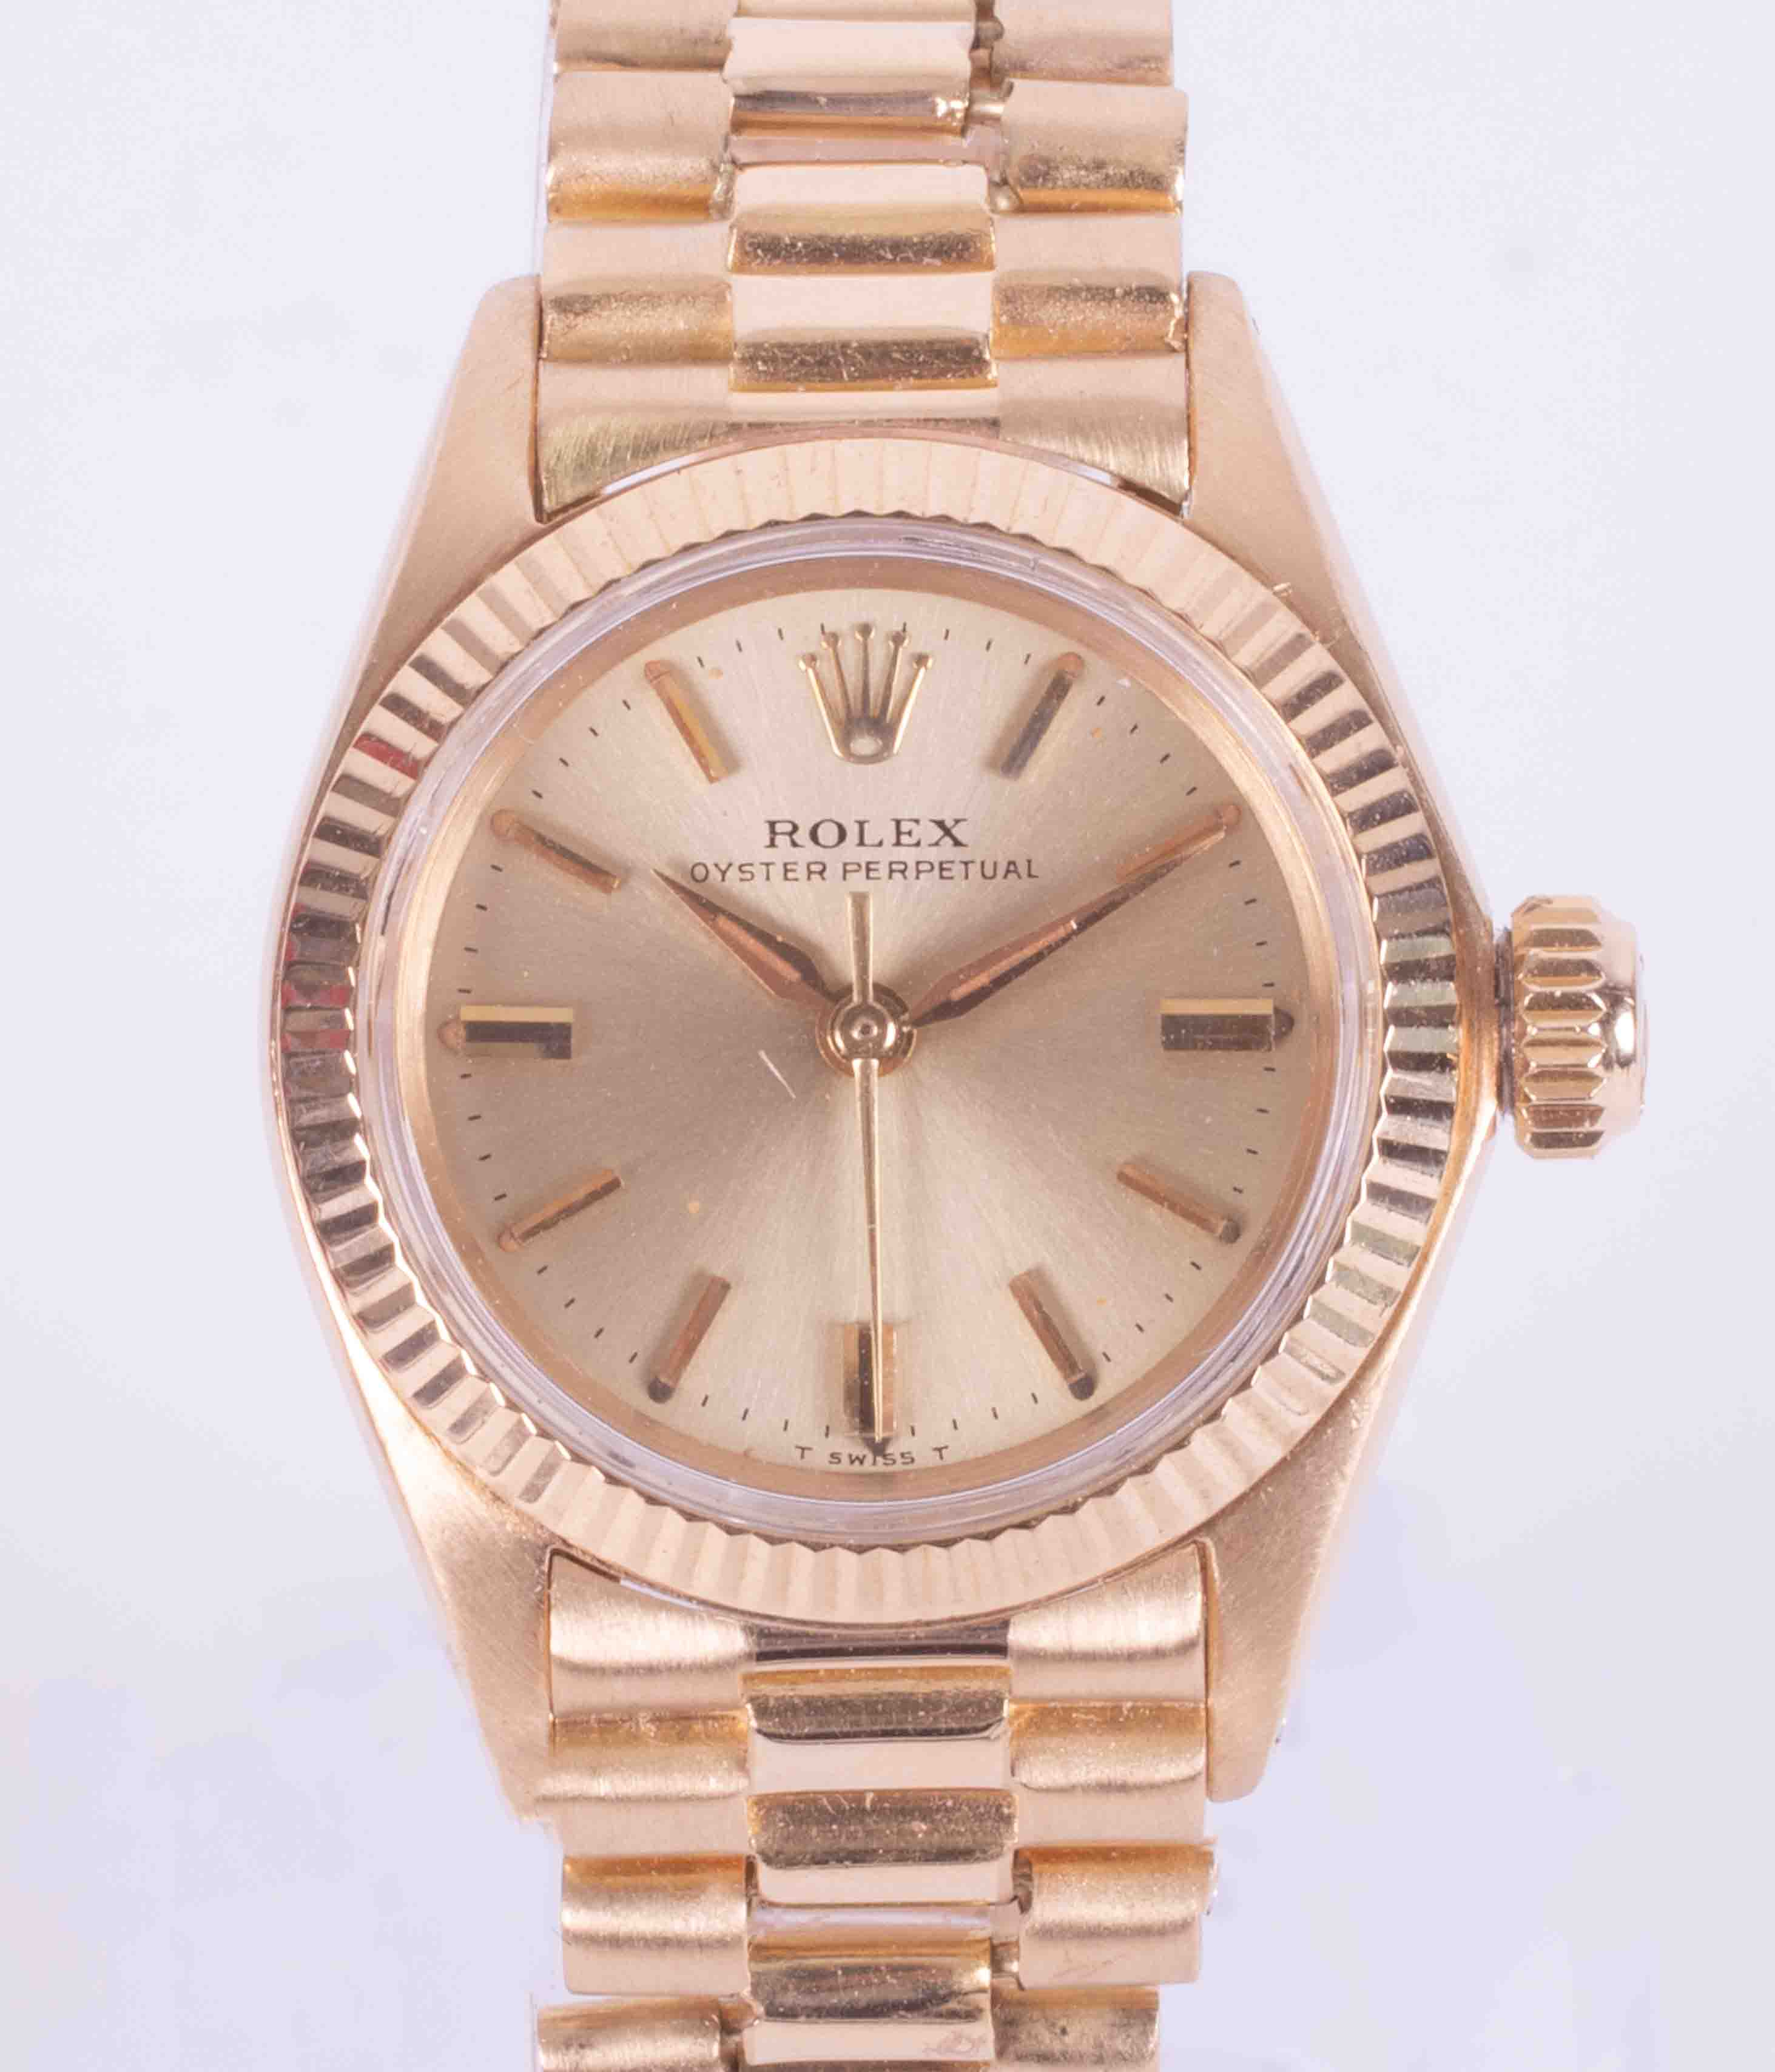 Rolex, a 1967 ladies 18ct yellow gold Oyster Perpetual wristwatch, with guarantee dated 11th